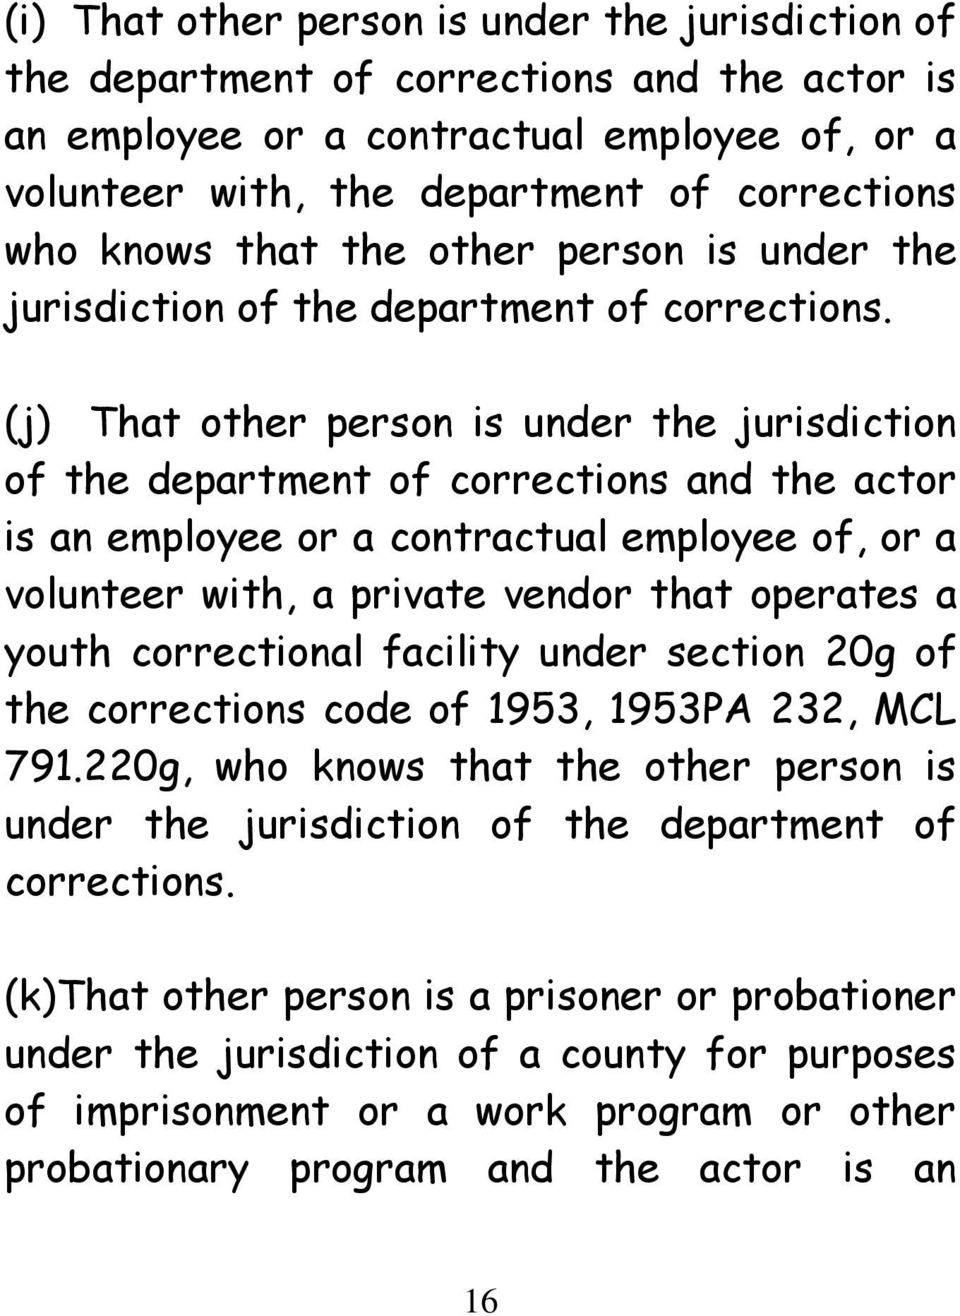 (j) That other person is under the jurisdiction of the department of corrections and the actor is an employee or a contractual employee of, or a volunteer with, a private vendor that operates a youth